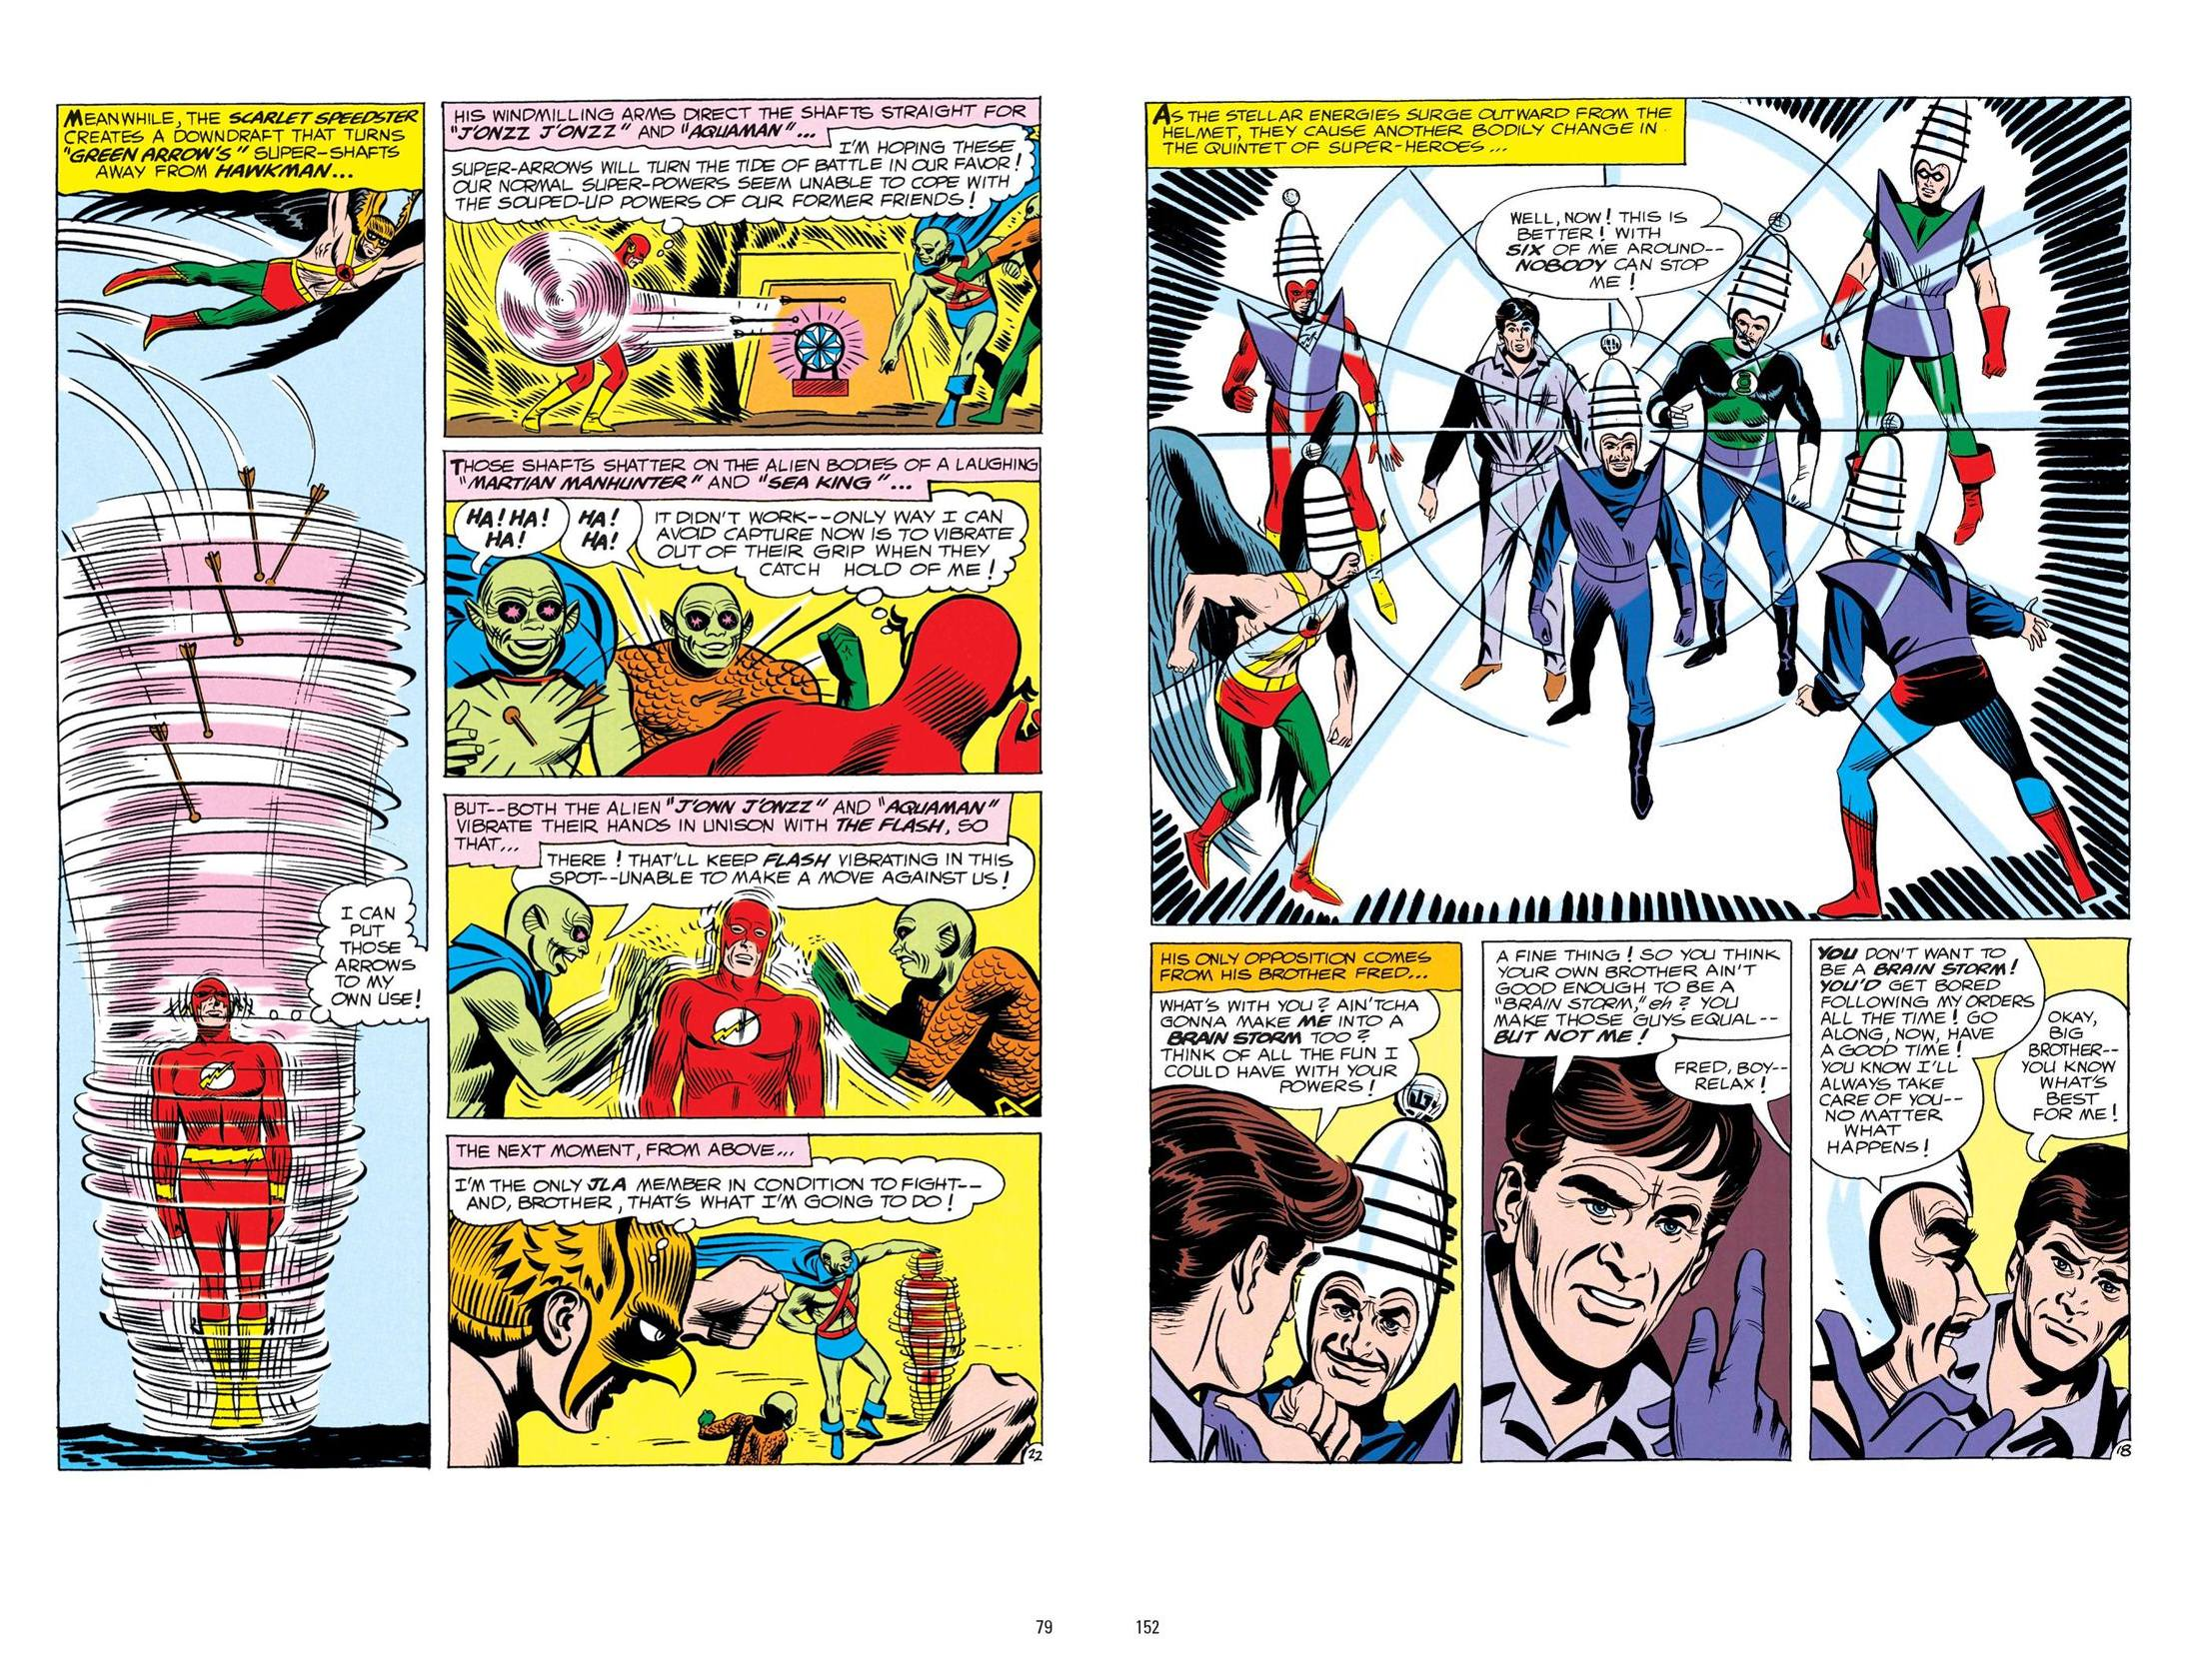 Justice League of America The Silver Age Vol 4 review